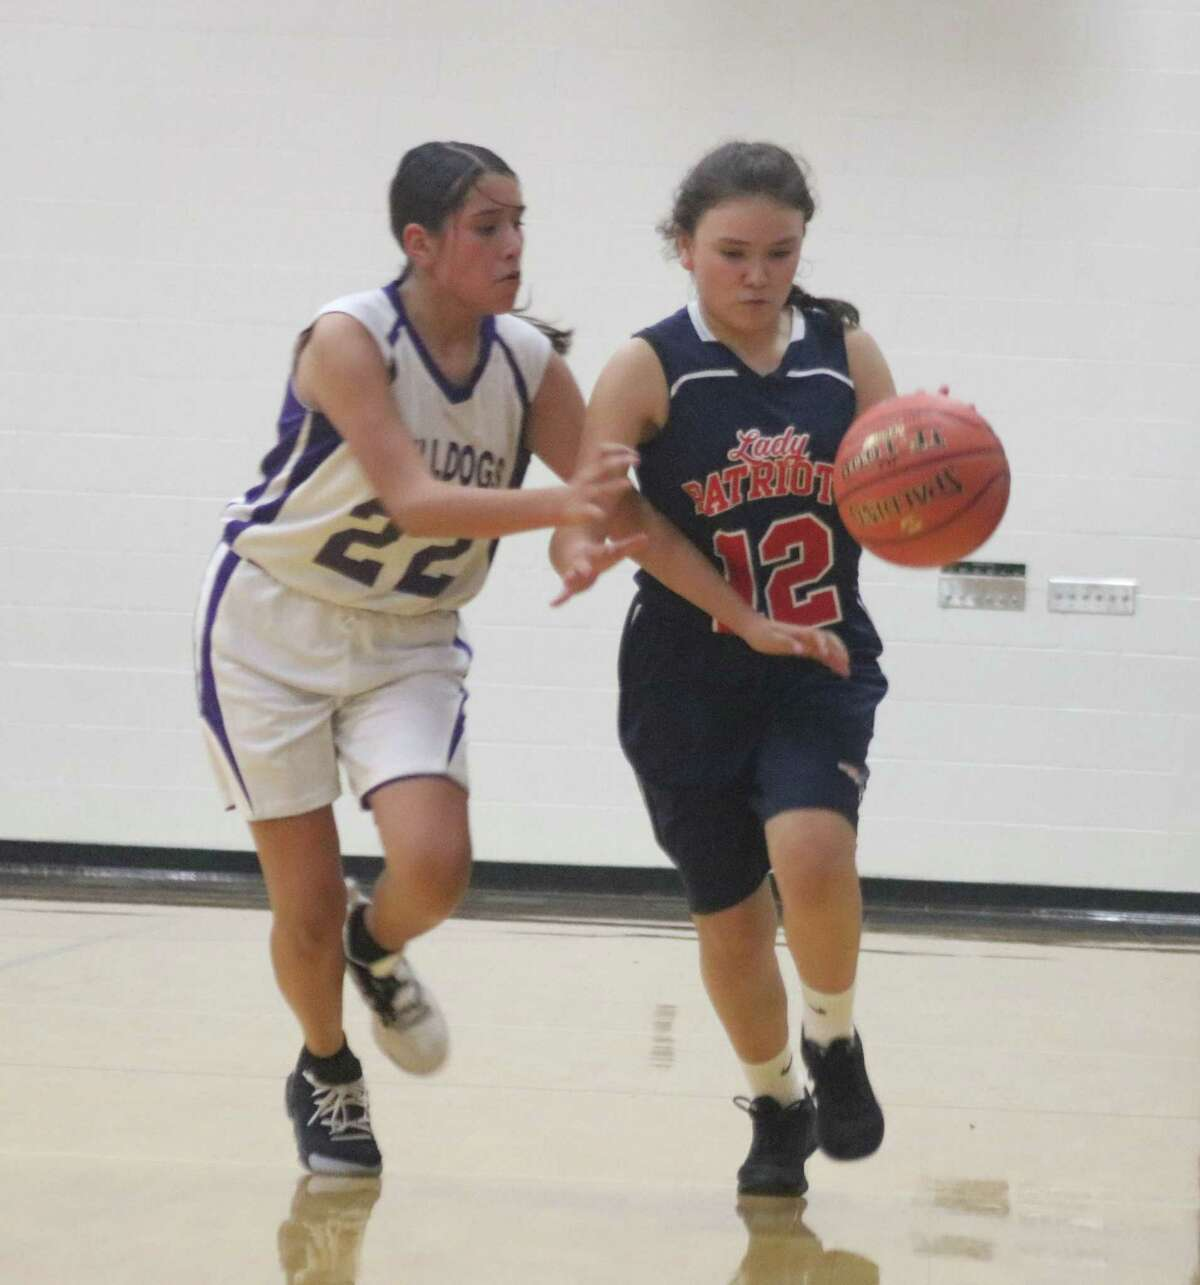 Southmore's Alazay Olivares (22) hounds Bondy's Felicity Artega as she works the ball up the court in Wednesday night's tournament game. Olivares scored all 16 of Southmore's points in the 31-16 final score.